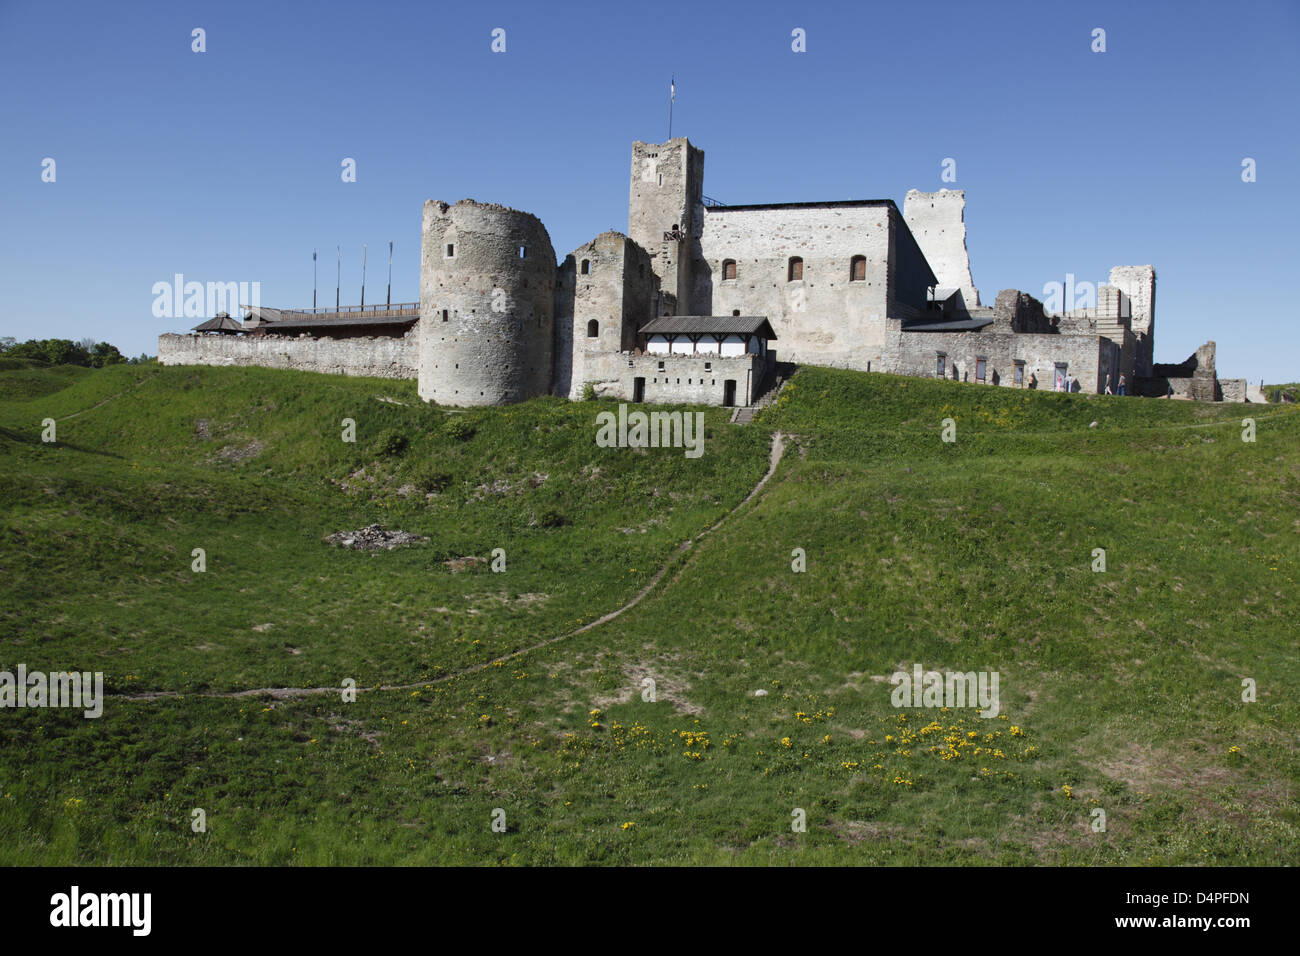 The ruin of the medieval Wesenberg stronghold pictured in Rakvere, Estonia, June 2009. Photo: Willy Matheisl Stock Photo